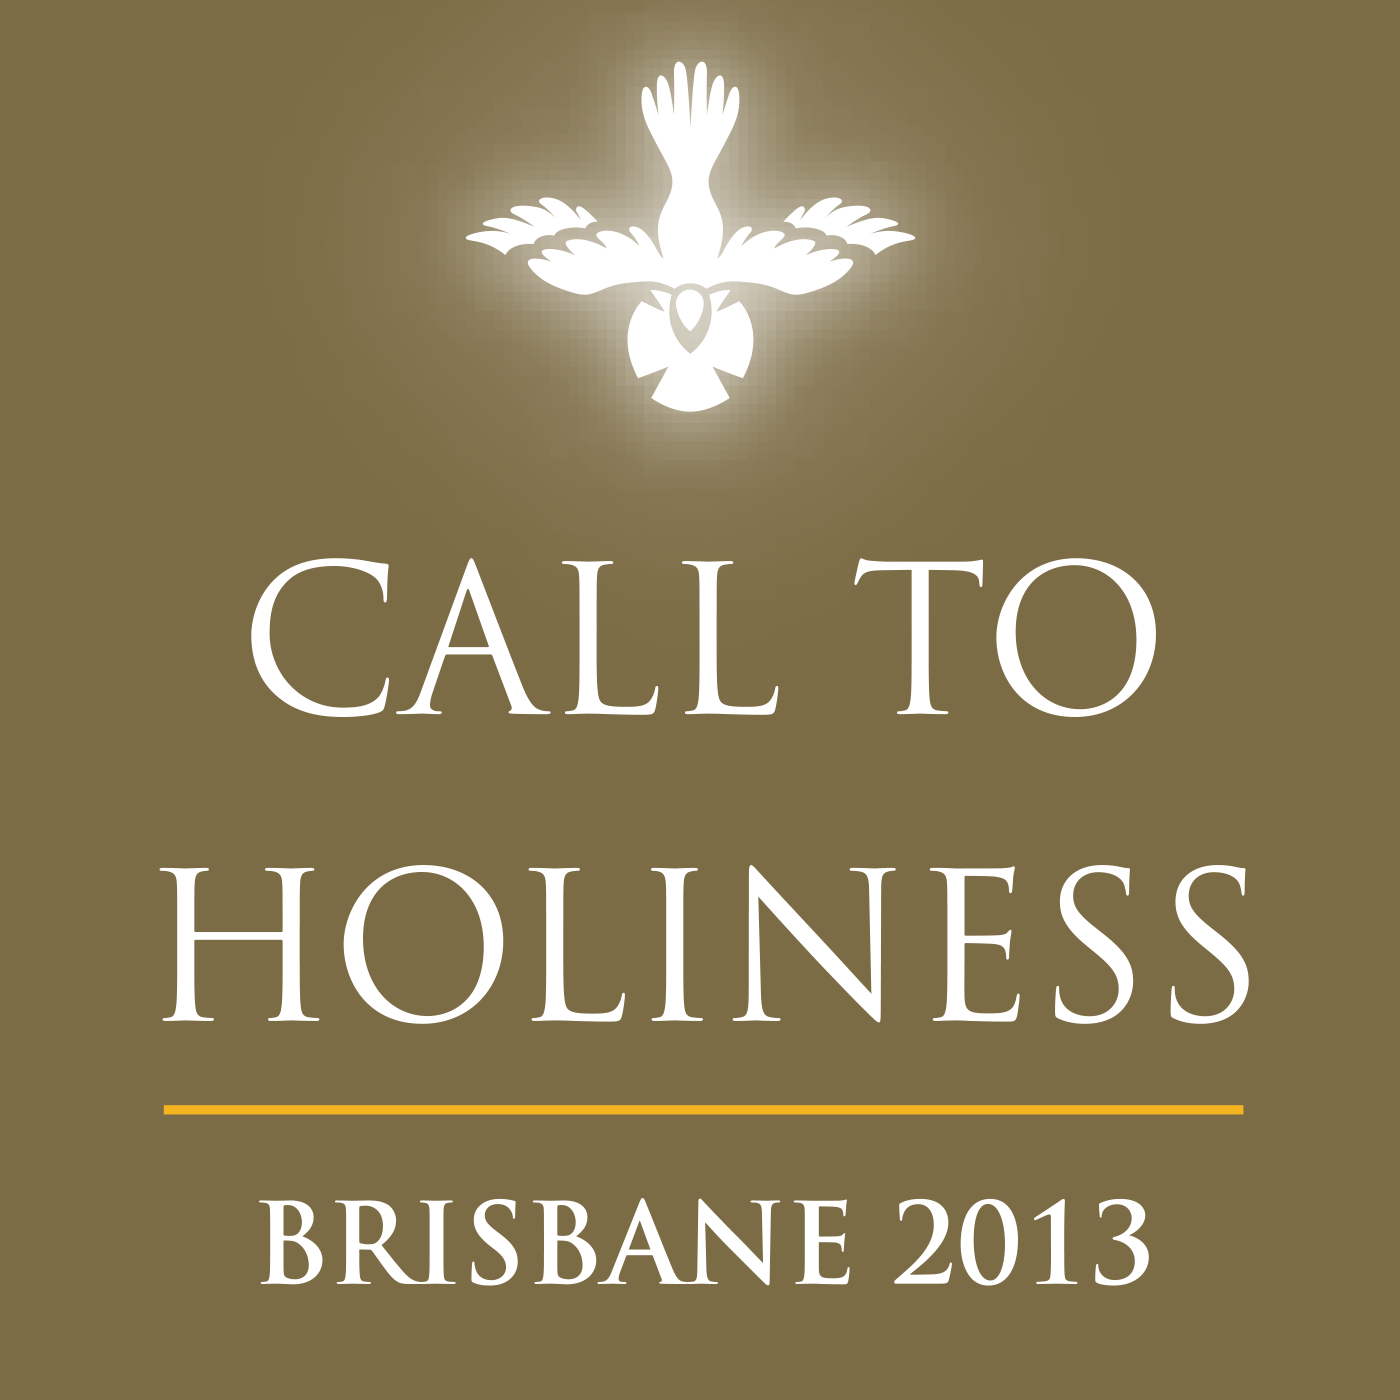 Call to Holiness – Cradio